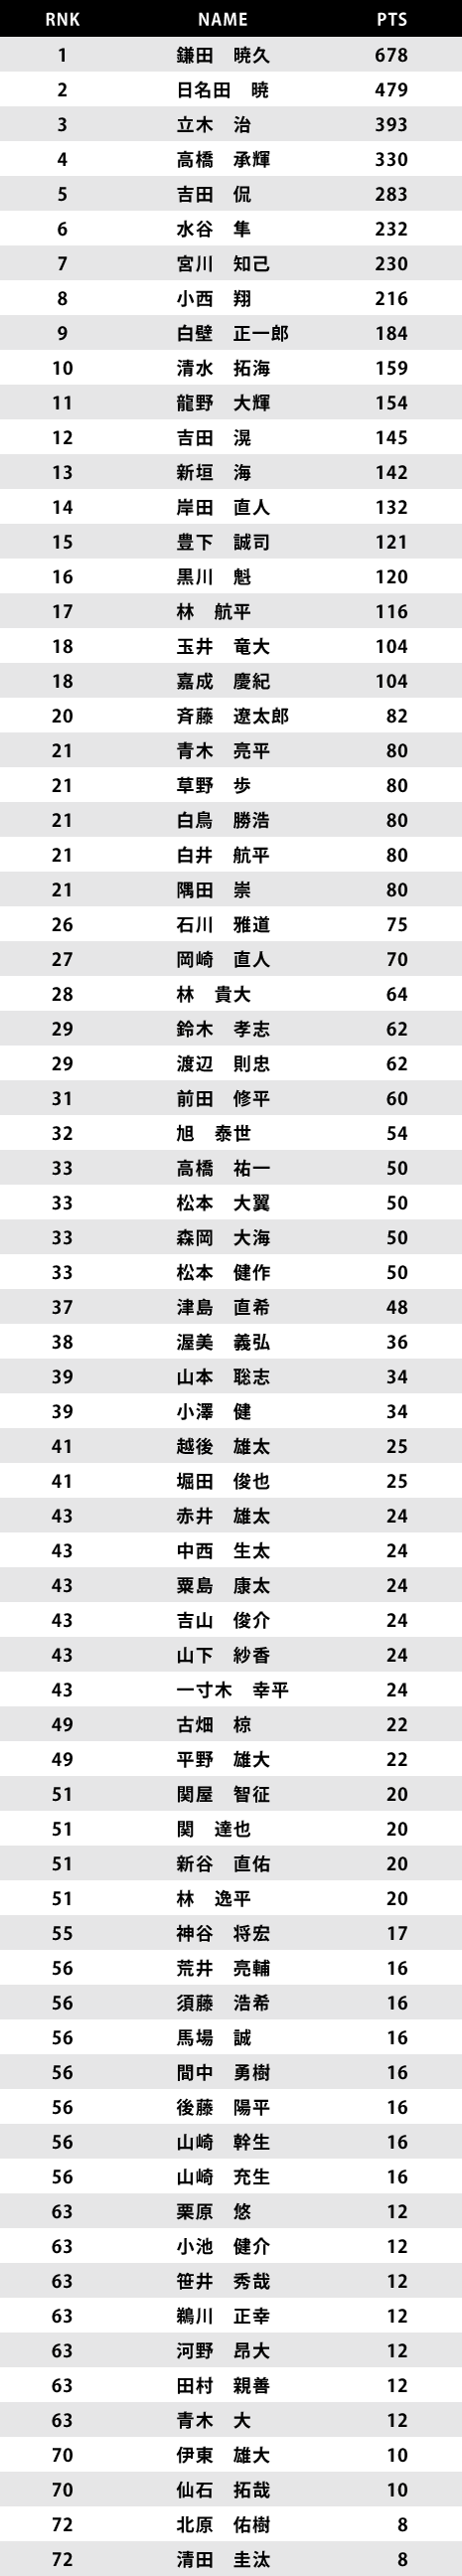 ranking_0926.png